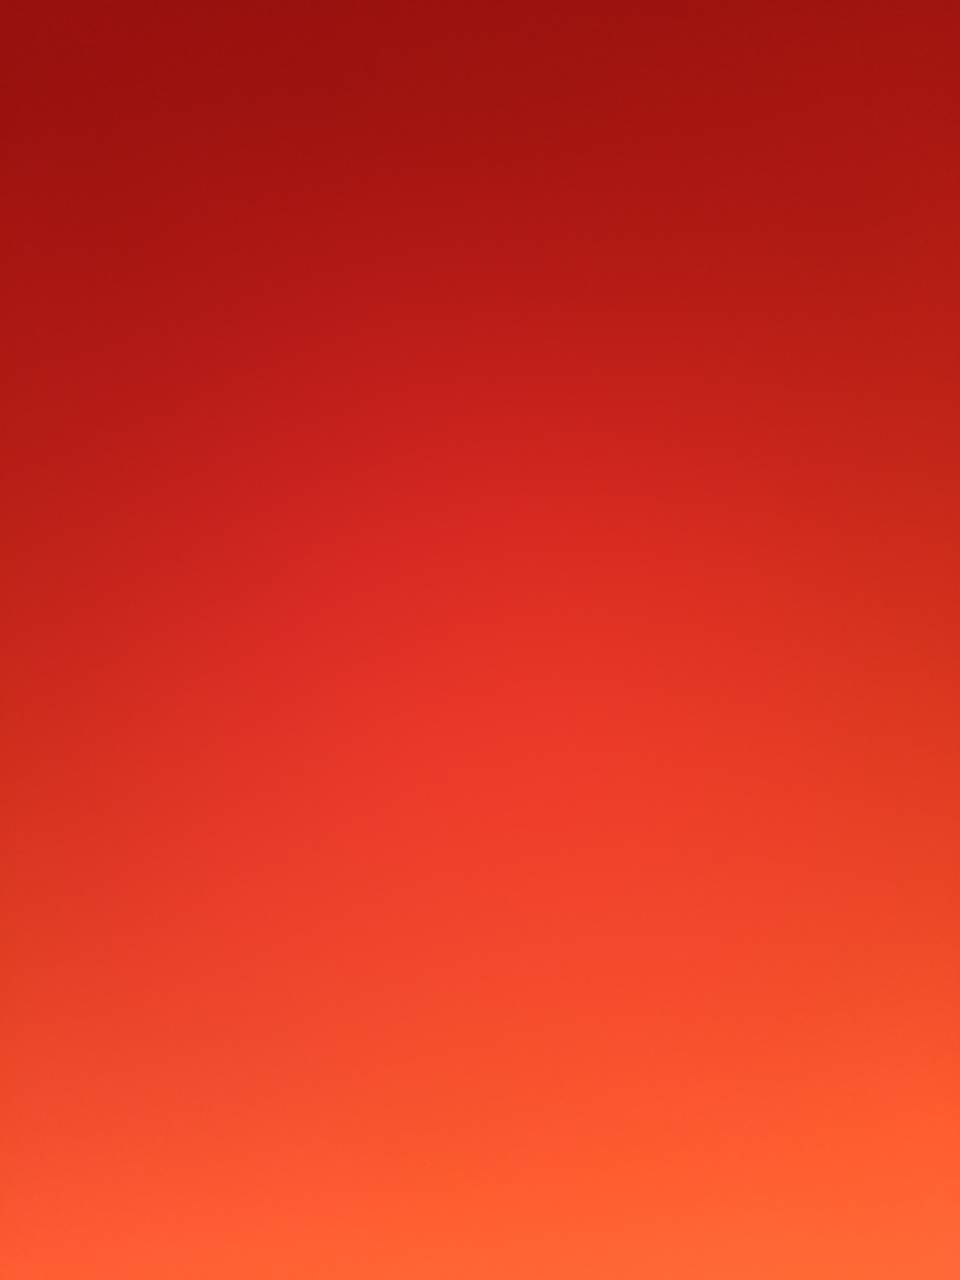 Red Screen Wallpaper By Nathanmurphy583 B6 Free On Zedge